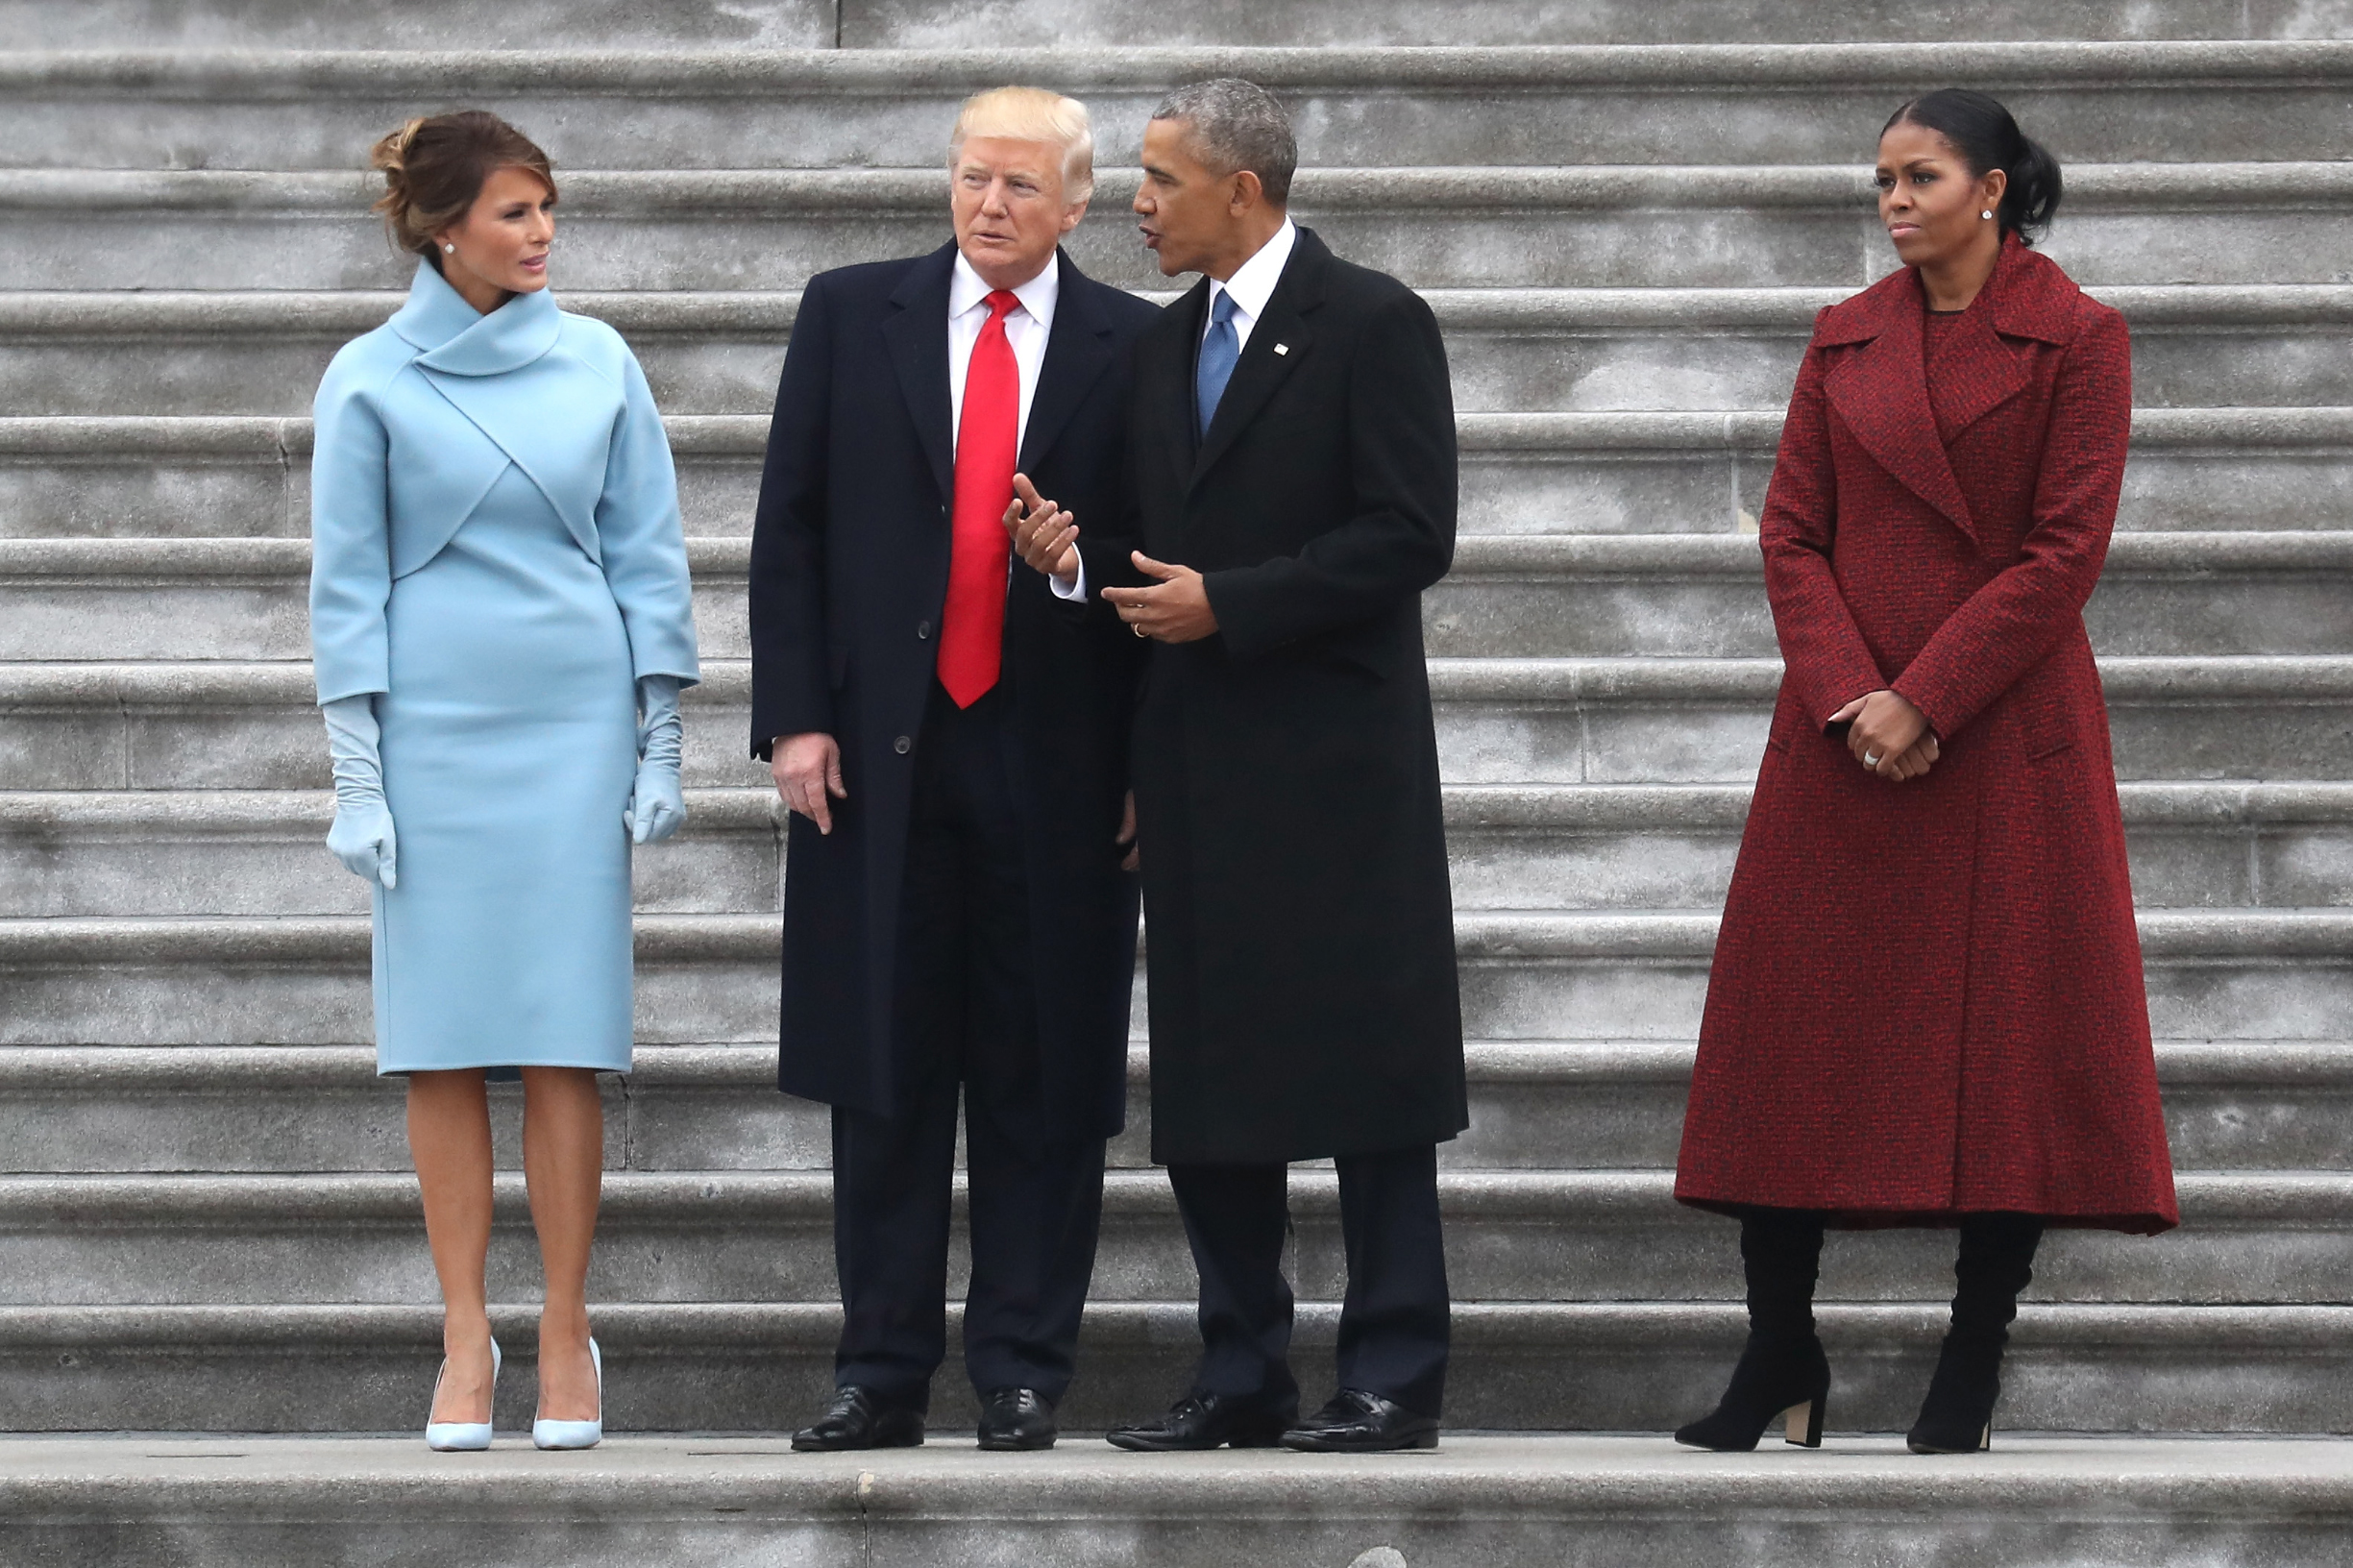 President Donald Trump and former president Barack Obama stand on the steps of the  U.S. Capitol with First Lady Melania Trump and Michelle Obamal on January 20, 2017 in Washington, DC. In today's inauguration ceremony Donald J. Trump becomes the 45th president of the United States.  REUTERS/Rob Carr/Pool - HT1ED1L02FS71